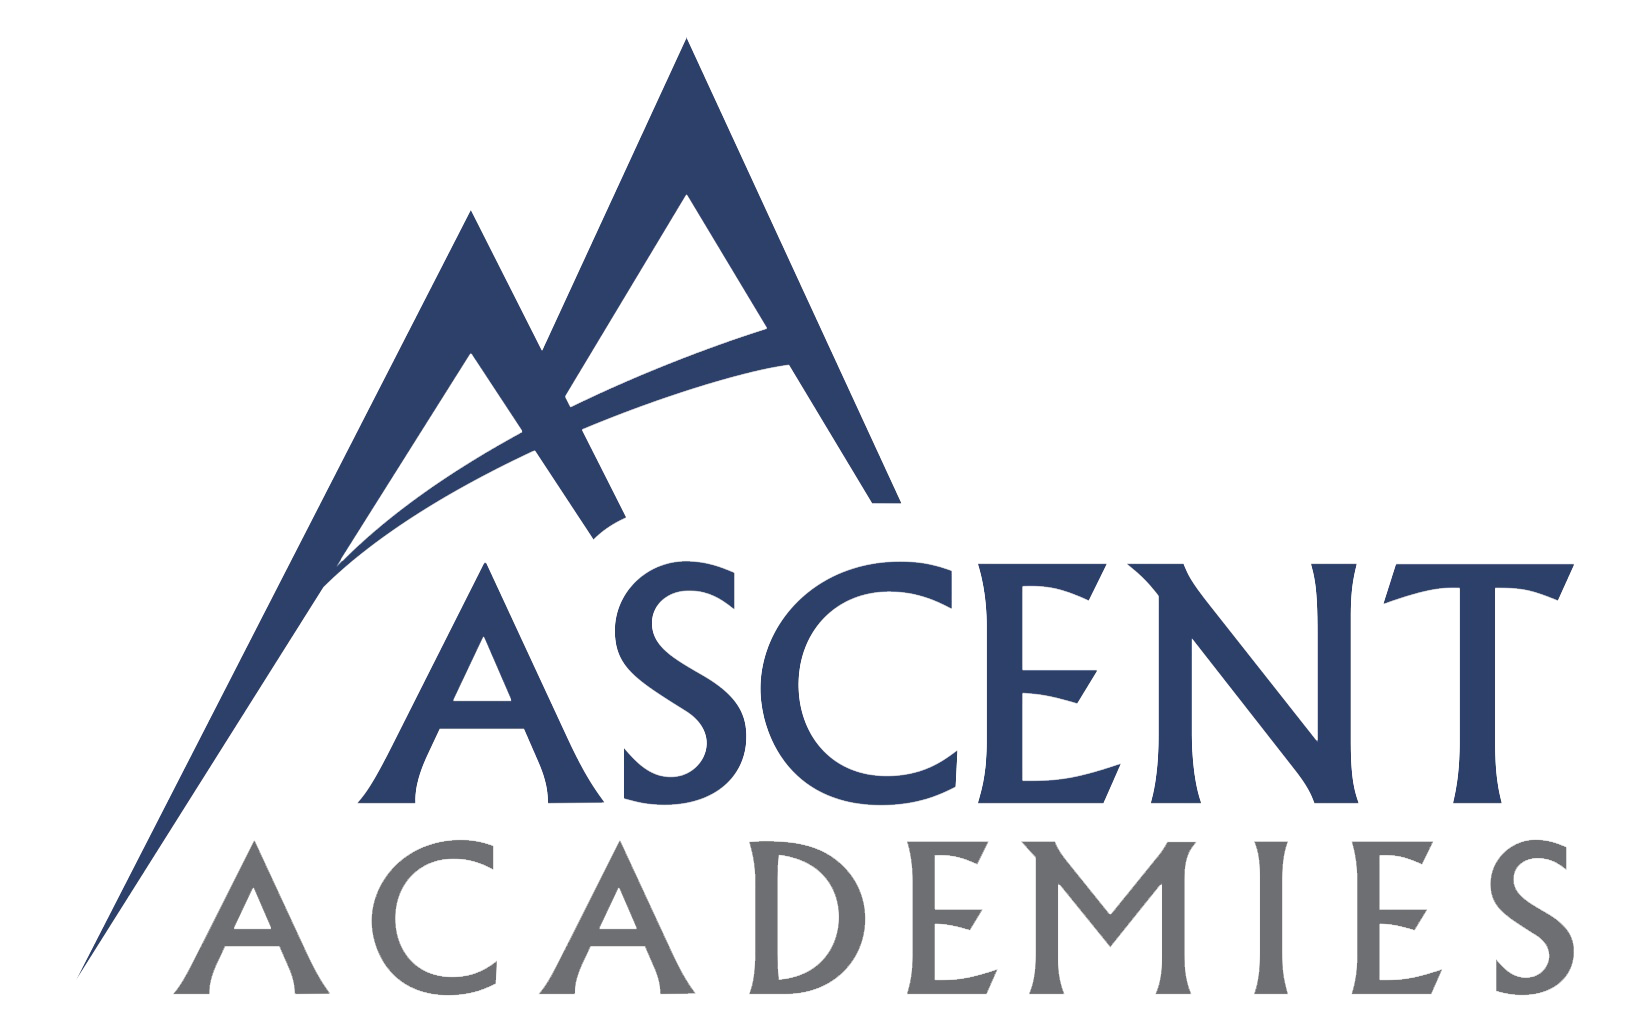 Ascent Academy